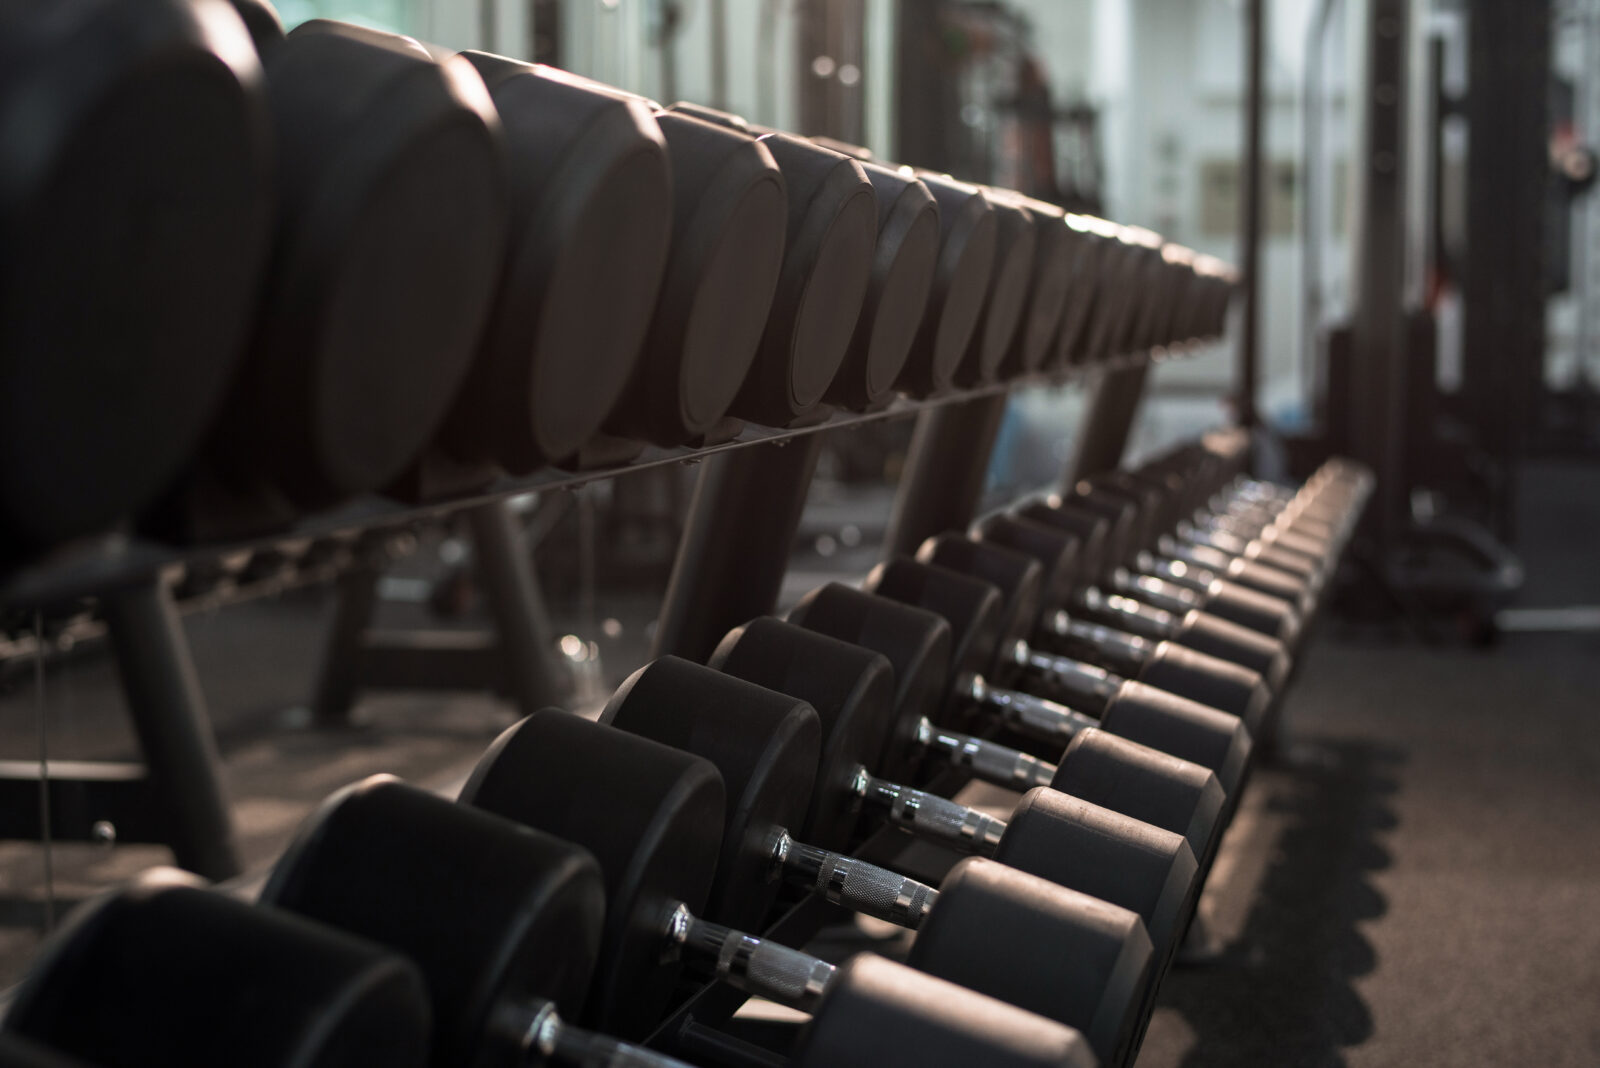 Tips On Looking After Your Gym Equipment